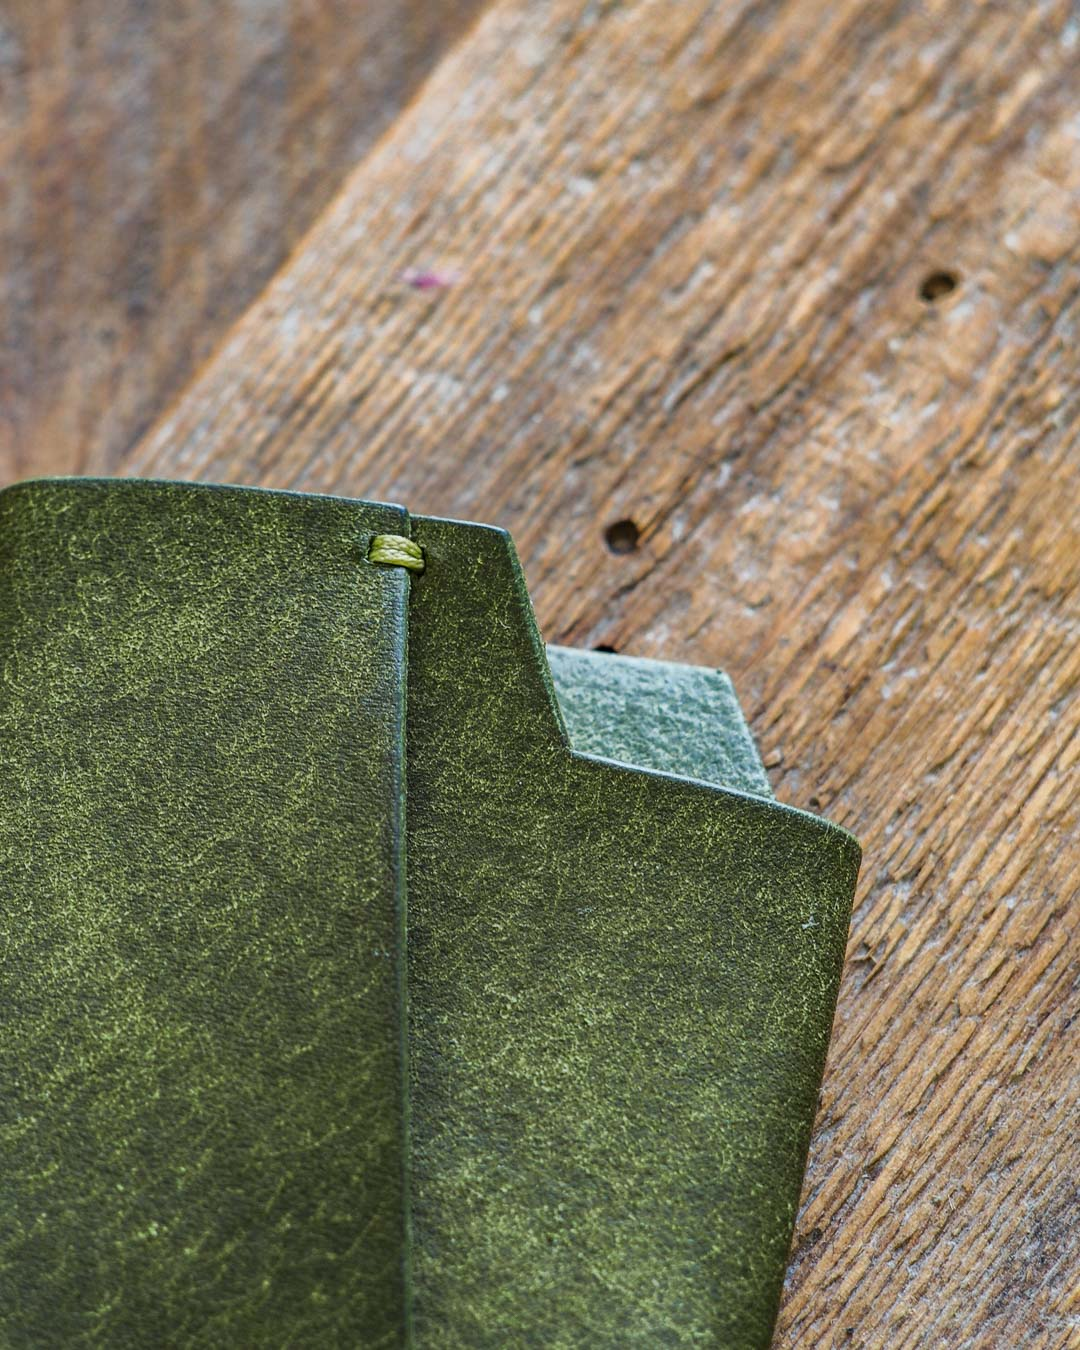 Luava handmade leather wallet handcrafted card holder cardholder made in finland vortex pueblo olive front detail